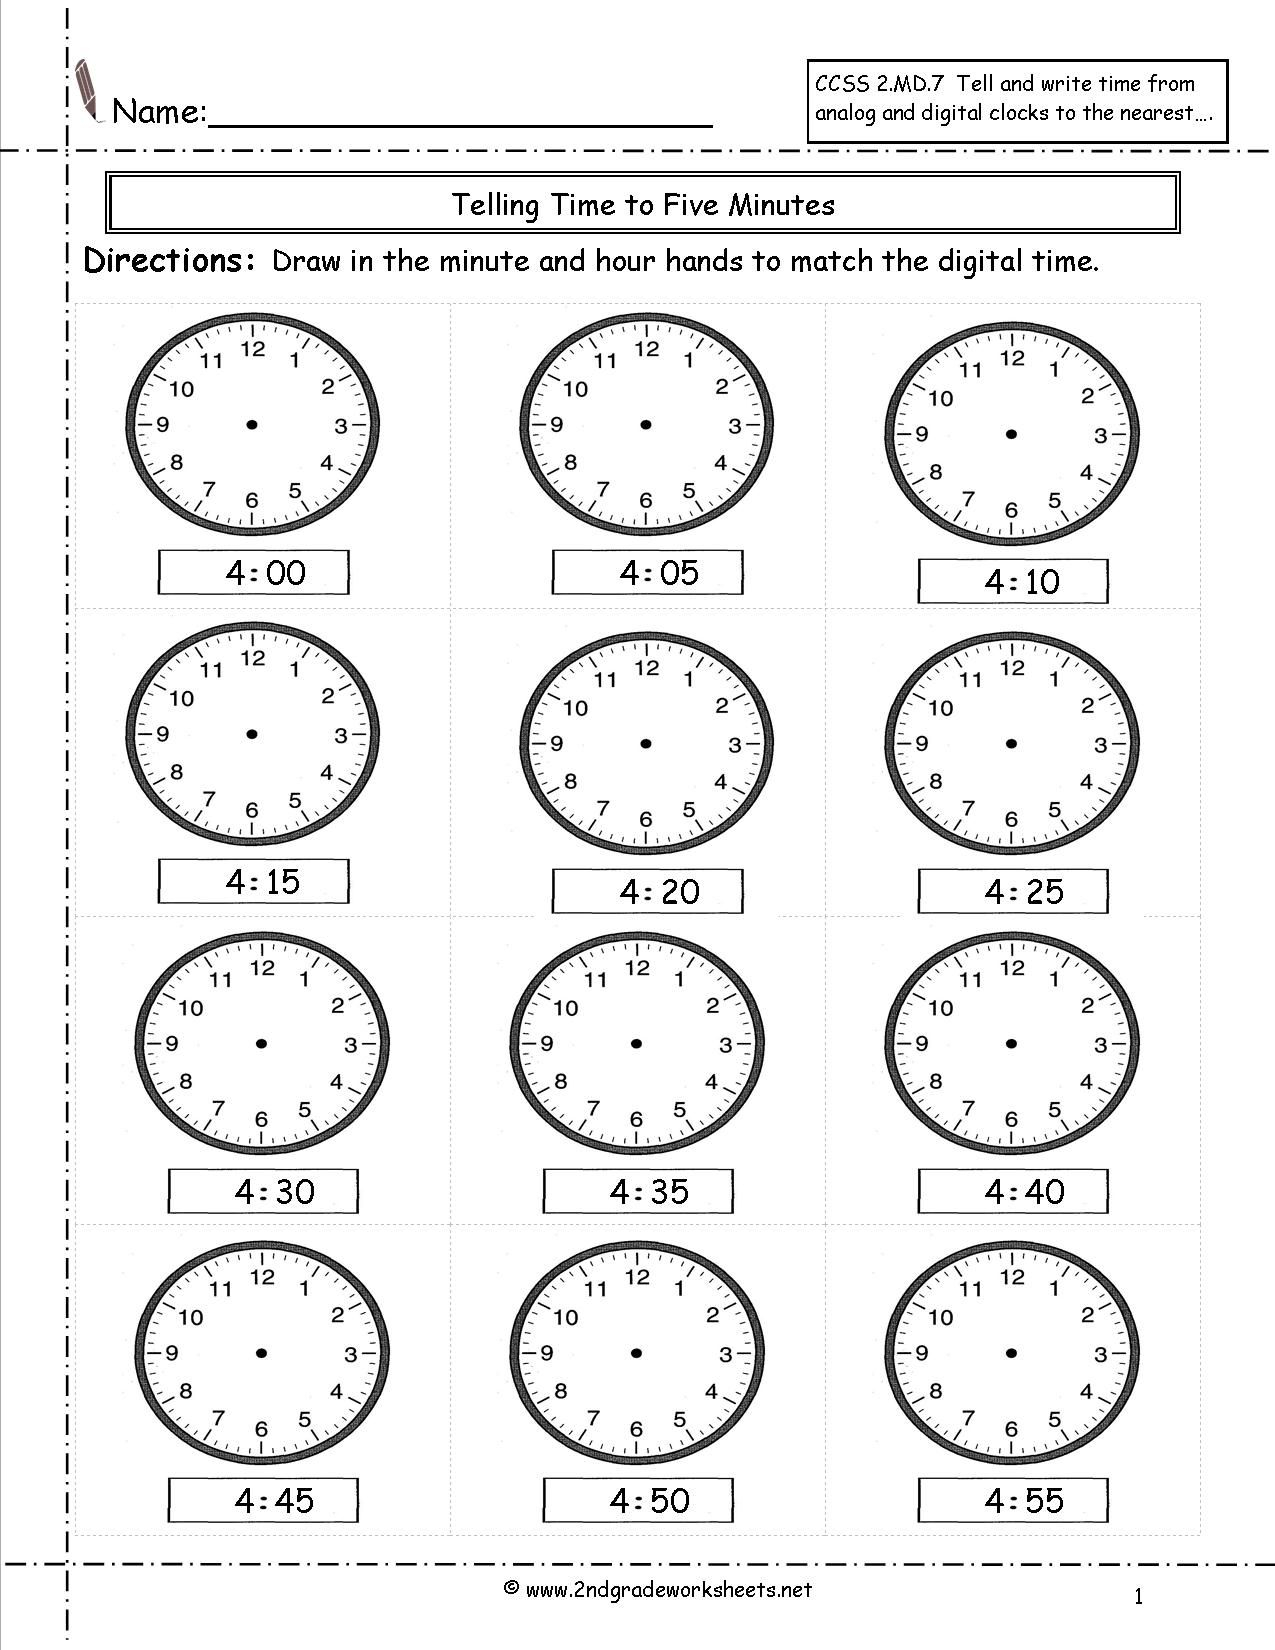 Telling Time Worksheets | Telling Time Worksheets, Time